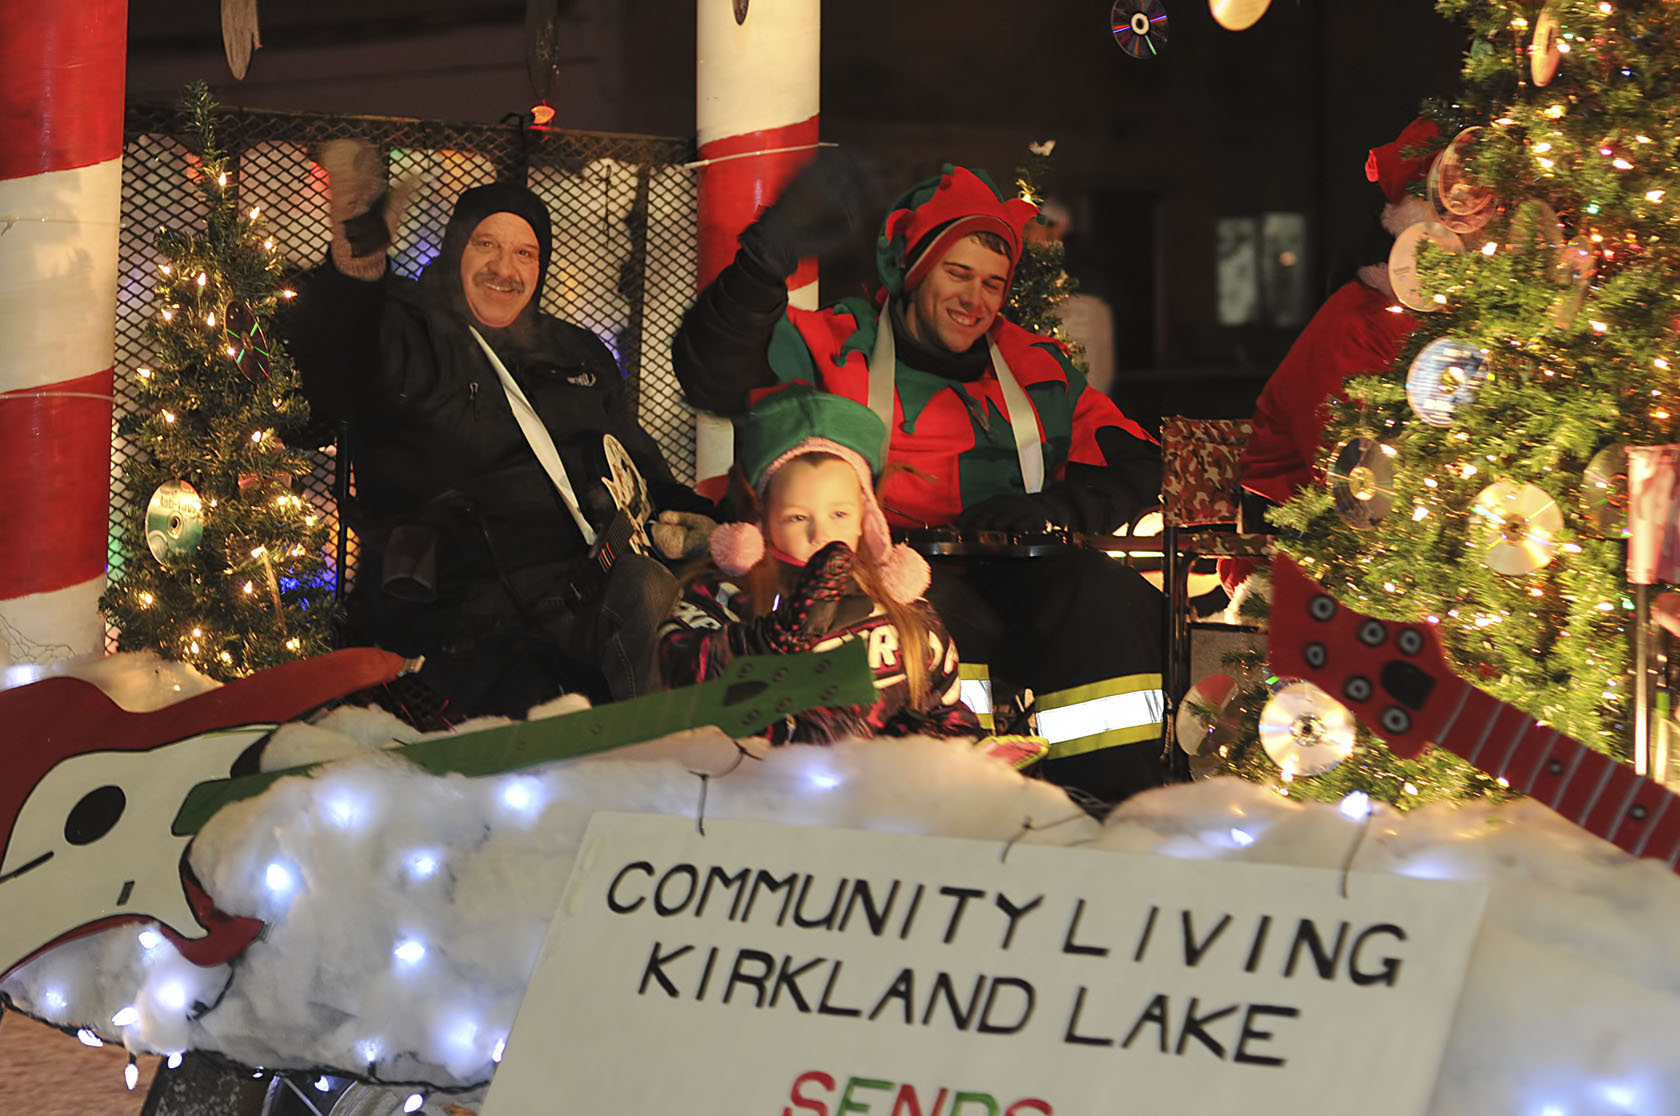 Kirklands Christmas.Kirkland Lake Christmas Parade Community Living Kirkland Lake